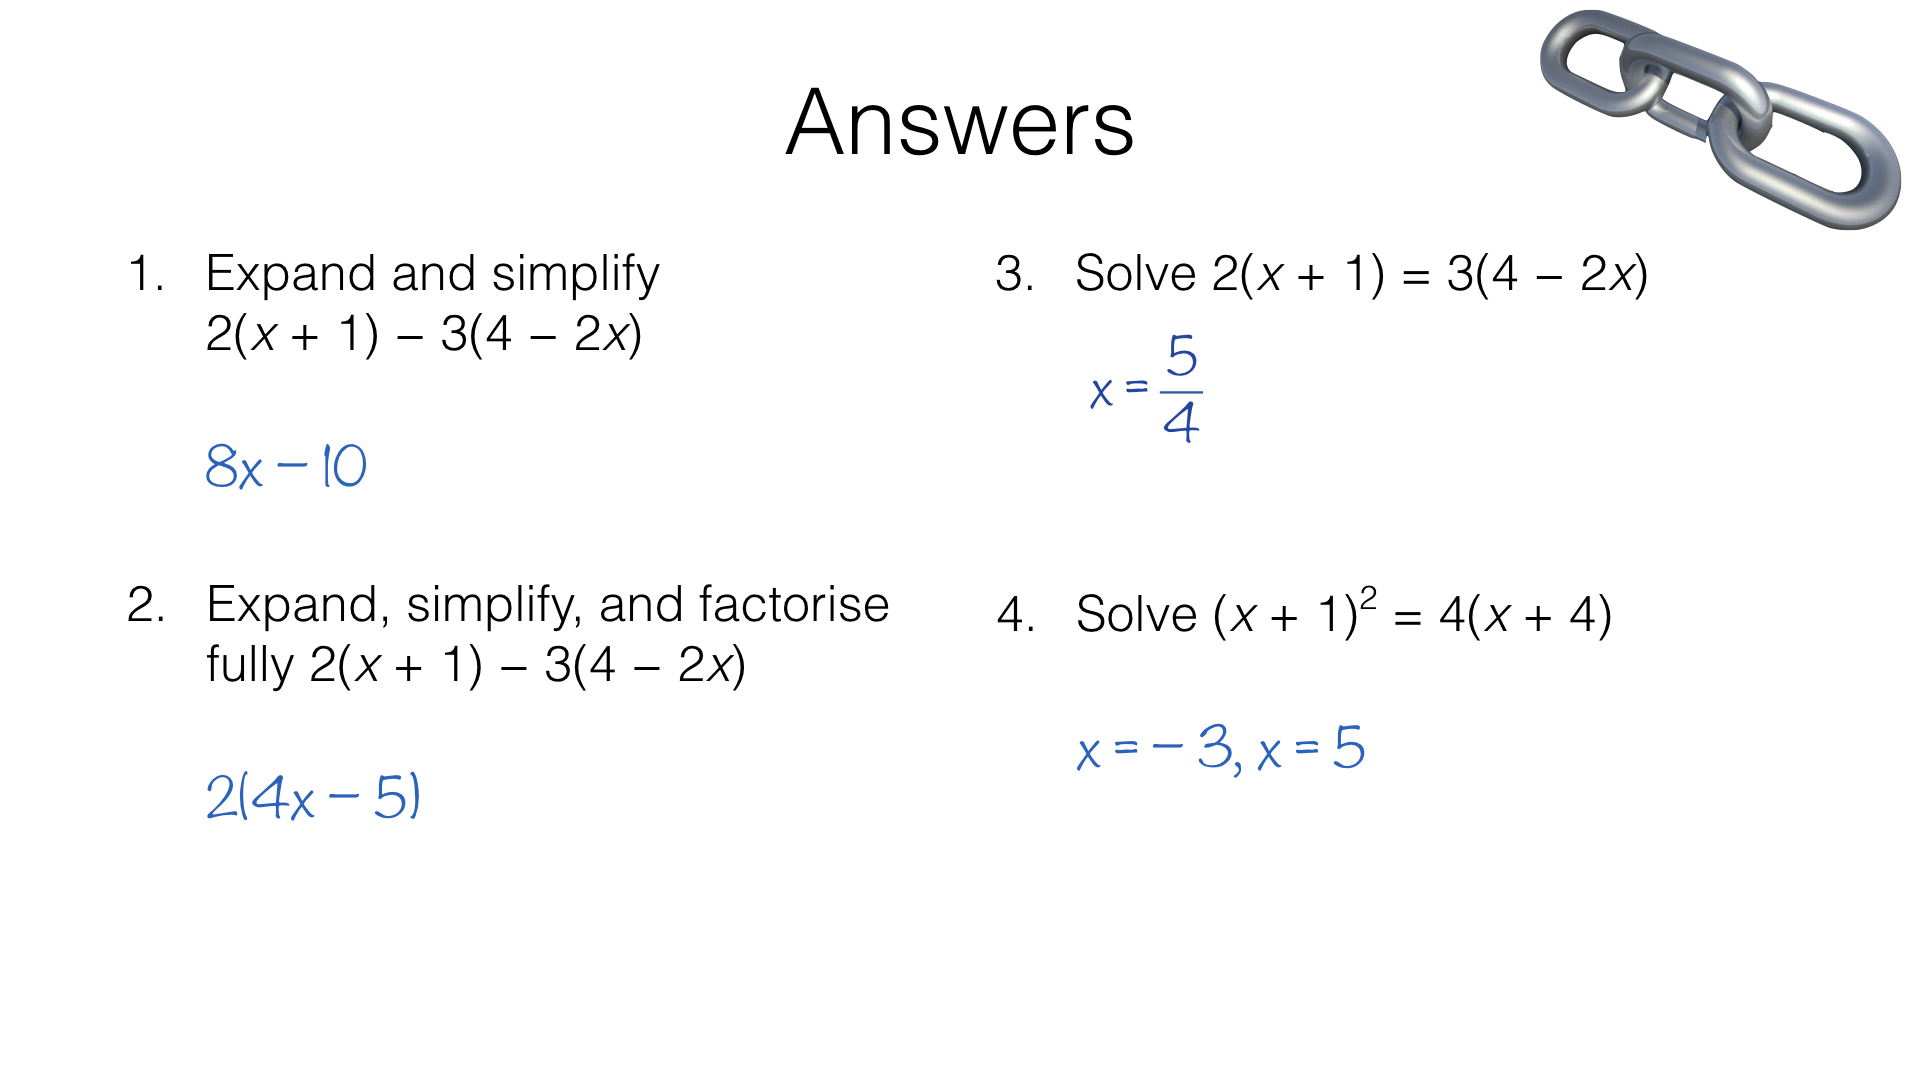 Expanding Simplifying Factorising And Solving Equations